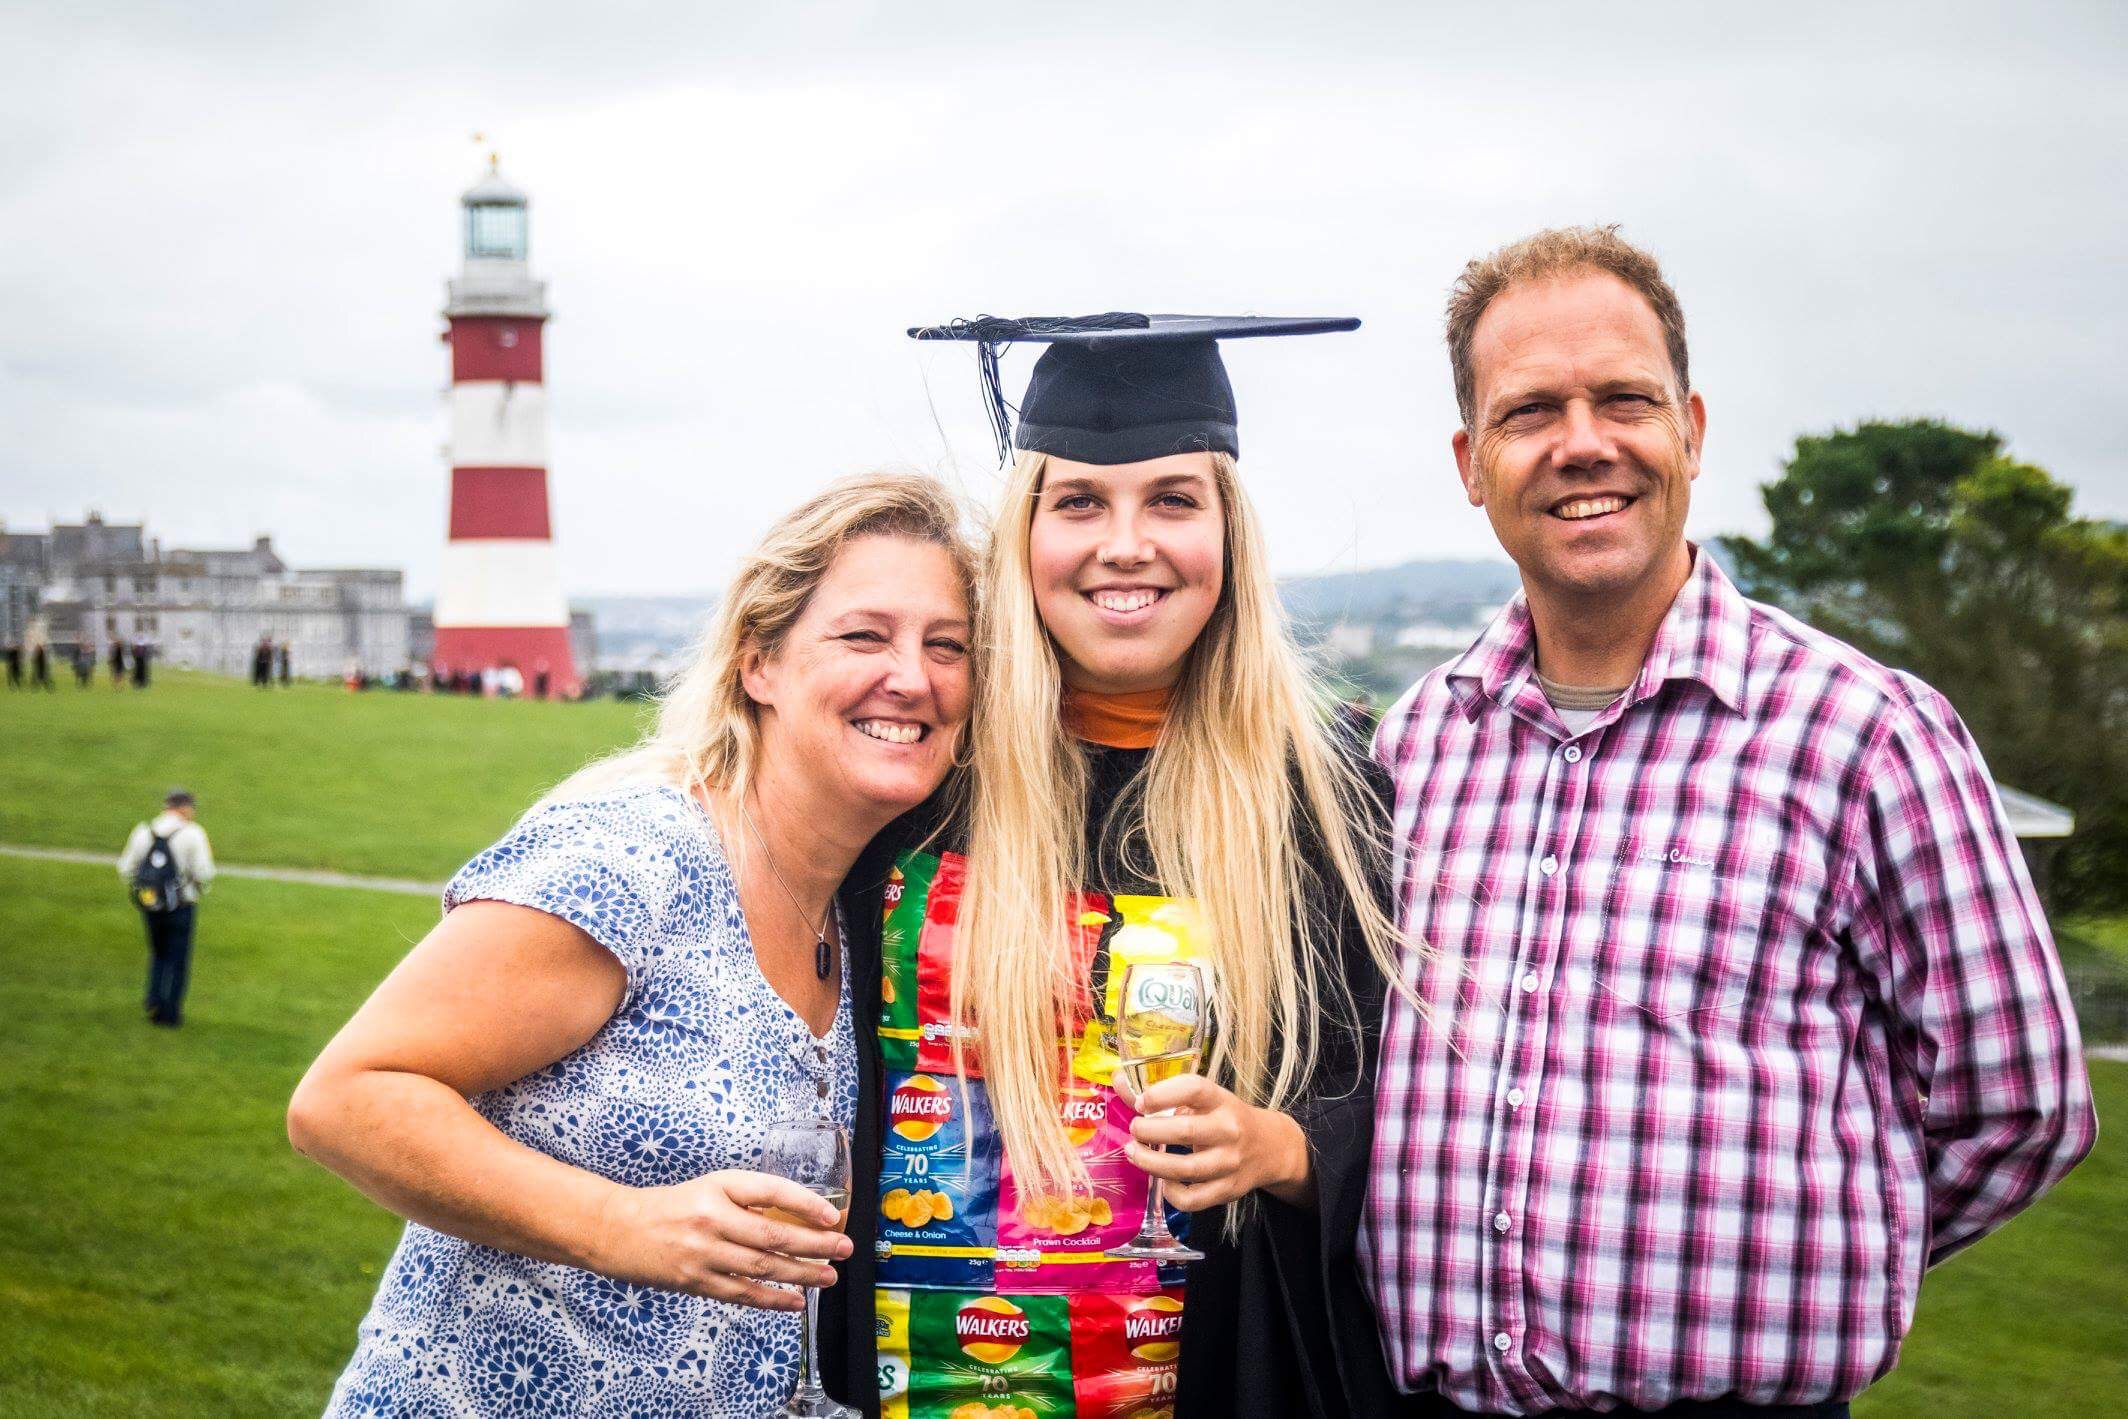 I wore a crisp packet dress to graduation to highlight the devastating impact of plastic waste on the ocean